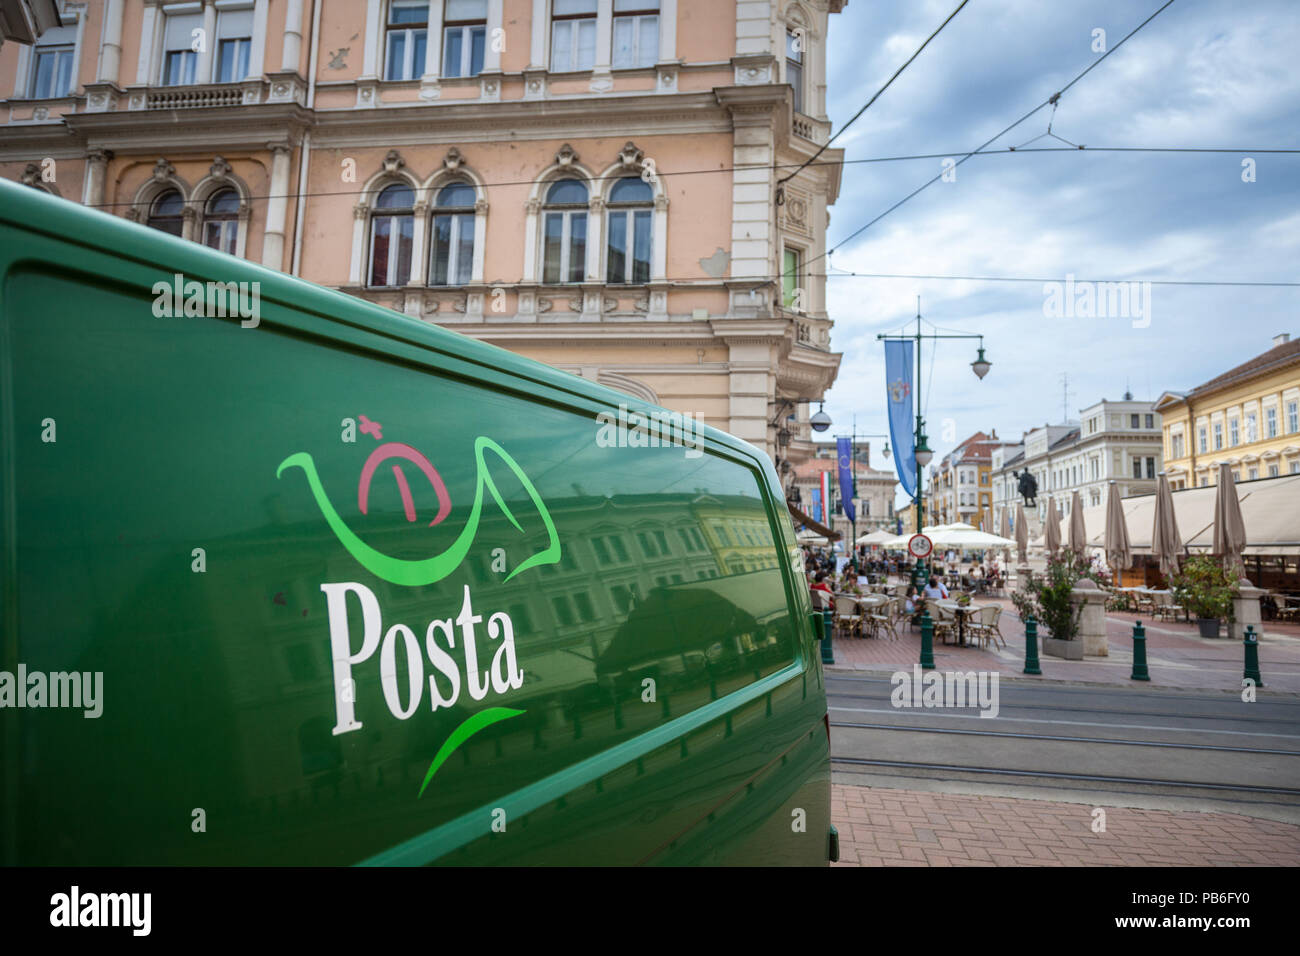 SZEGED, HUNGARY - JULY 4, 2018: Hungarian Post (also known as Magyar Posta) logo on one of their delivery vans. Magyar Posta is the postal administrat - Stock Image